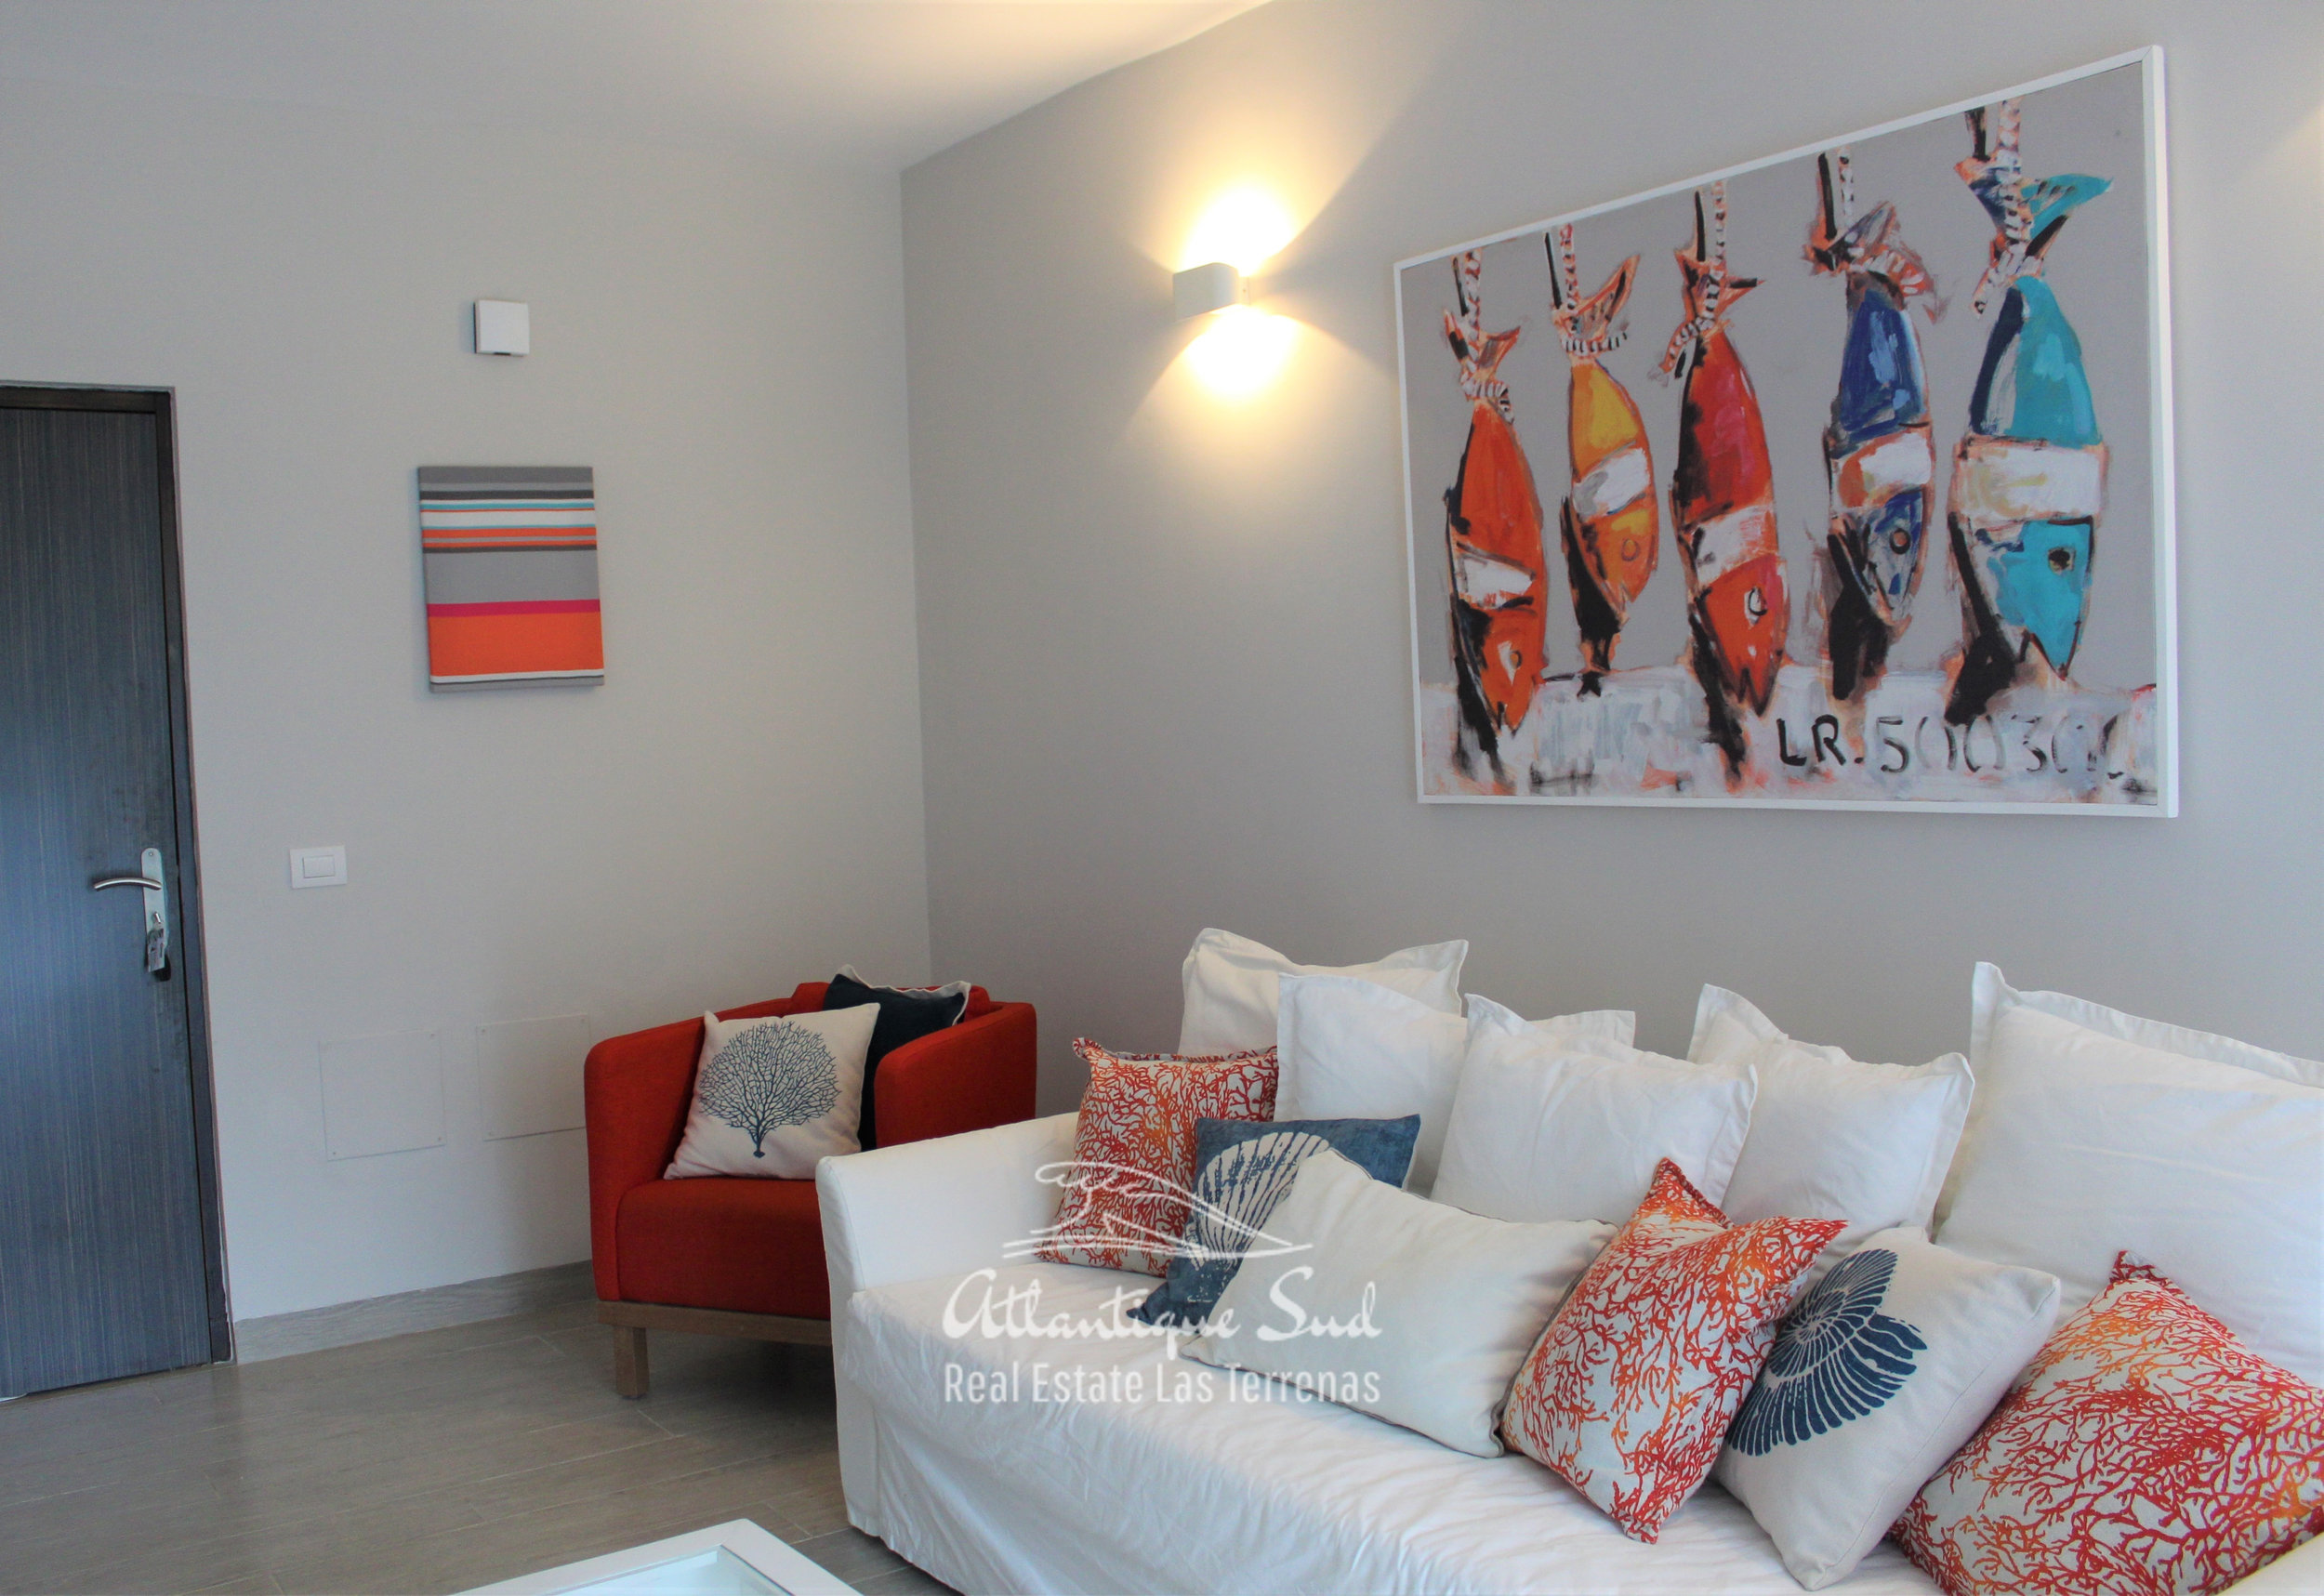 Cozy-1-bedroom-apartment-in-gated-community-close-to-the-center-of-lasterrenas6.jpg